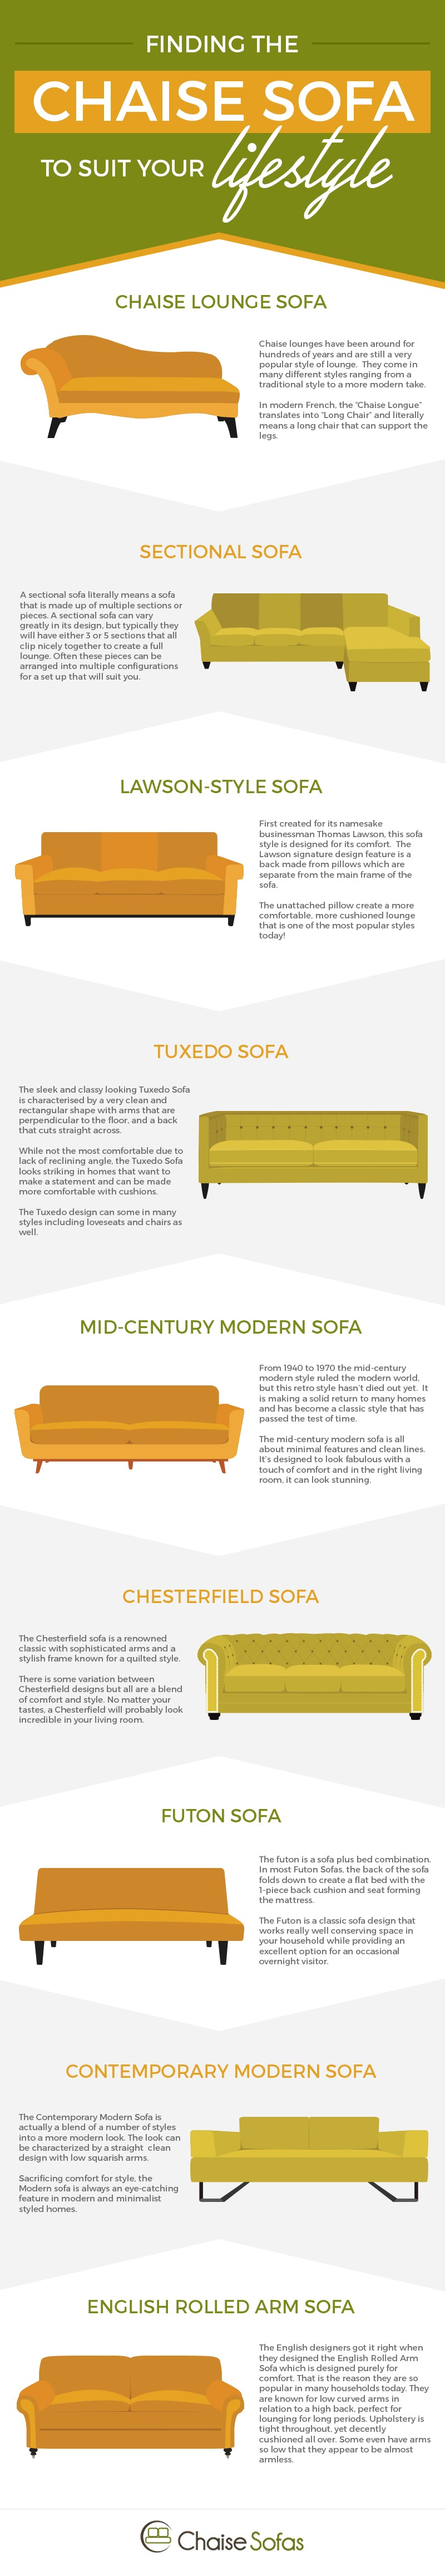 Finding-The-Right-Chaise-Sofas-To-Suit-Your-Lifestyle